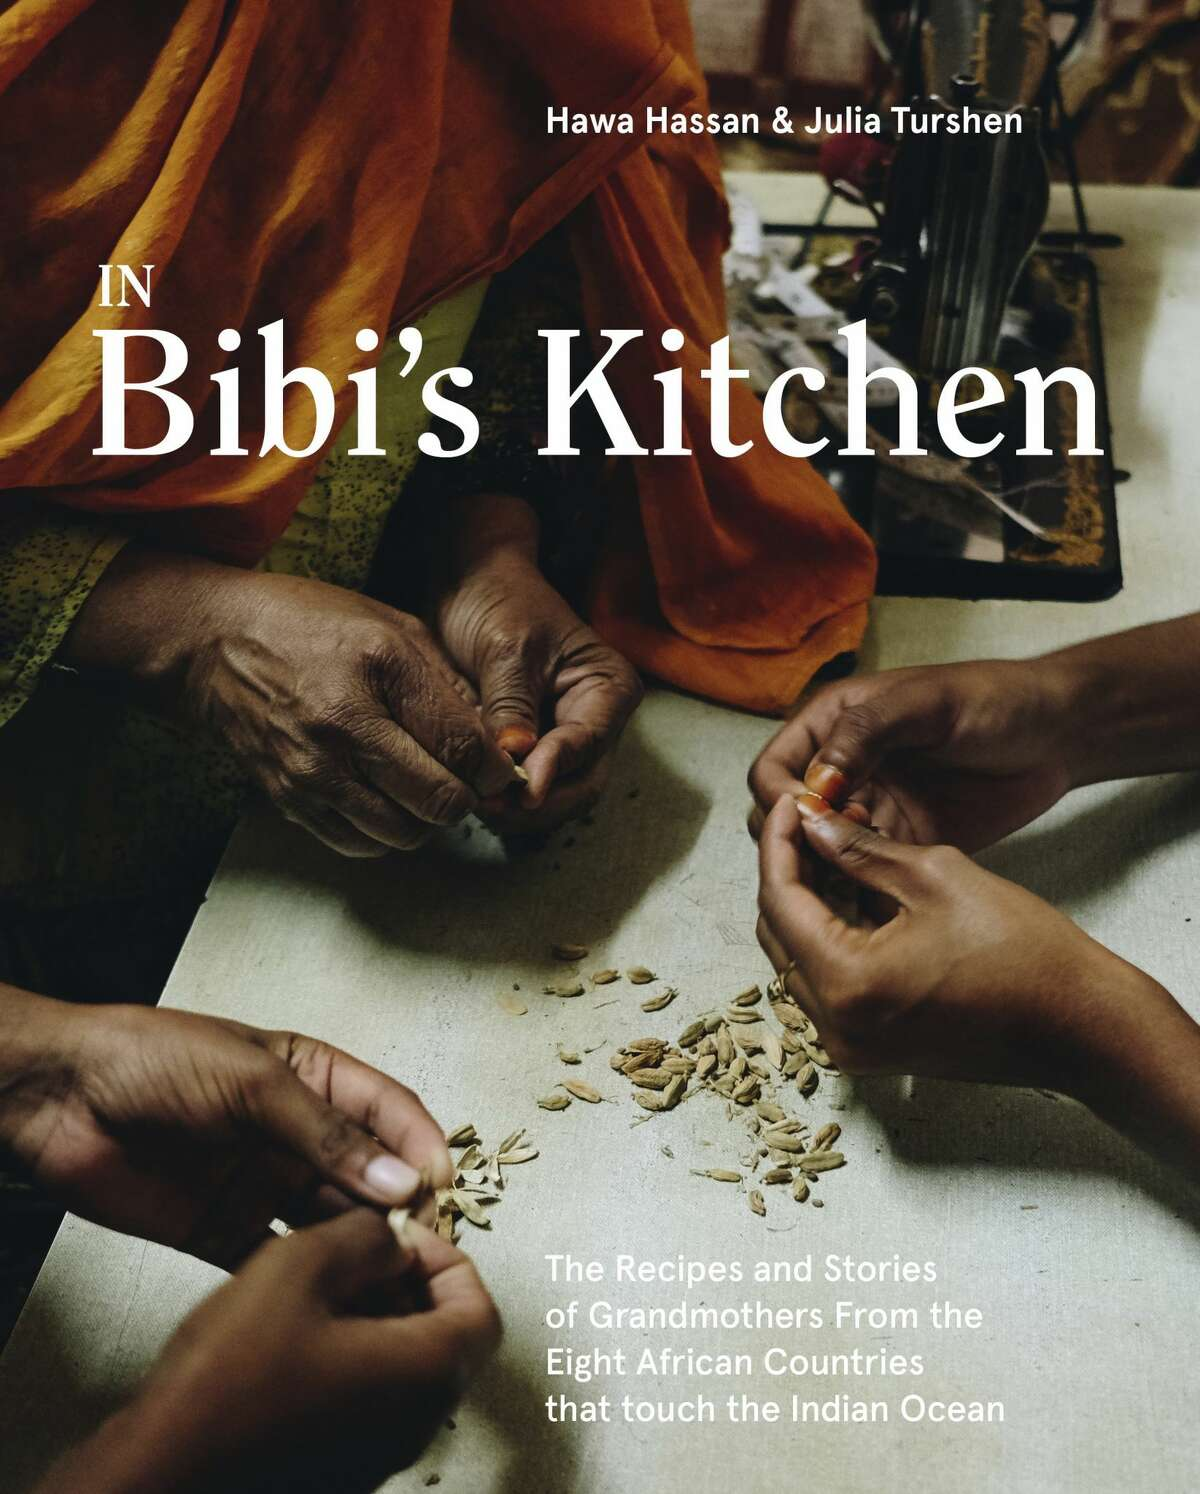 """Hawa Hassan's upcoming cookbook, """"In Bibi's Kitchen,"""" explores recipes and stories of grandmothers from eight African countries that touch the Indian Ocean."""